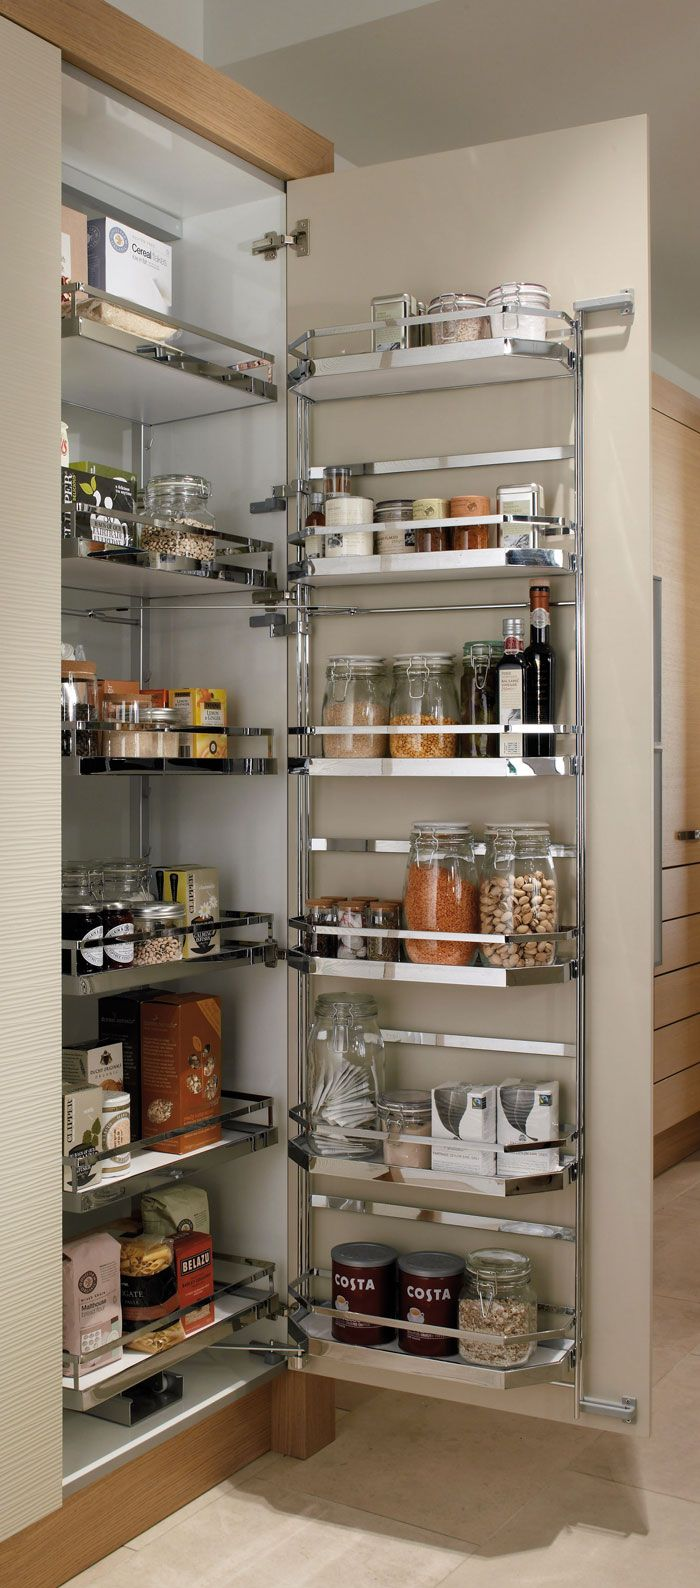 Making Hidden Storage in Your Kitchen: Modern hidden storage